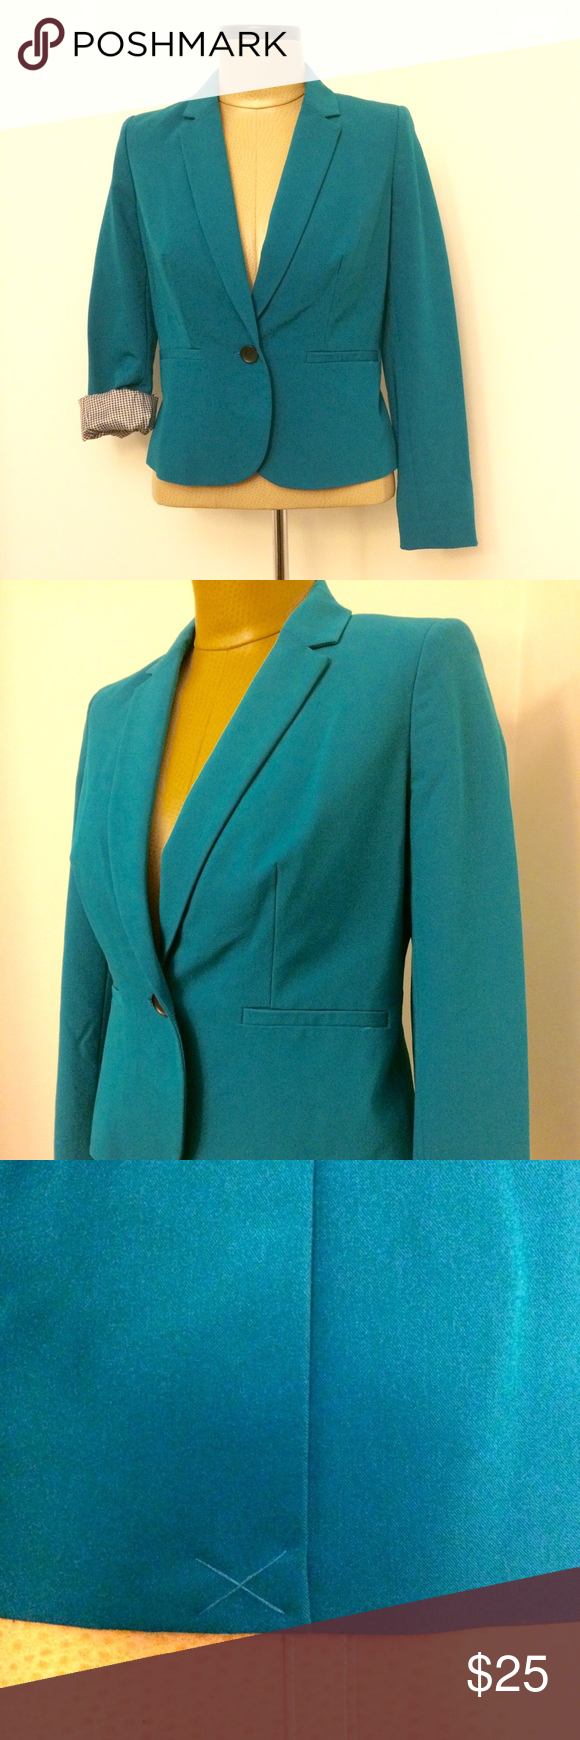 Worthington Blazer Worthington teal blazer. I wore this once for an interview. Looks good with sleeves down, or roll them up to show a modern black and white pattern. Size petite medium Worthington Jackets & Coats Blazers